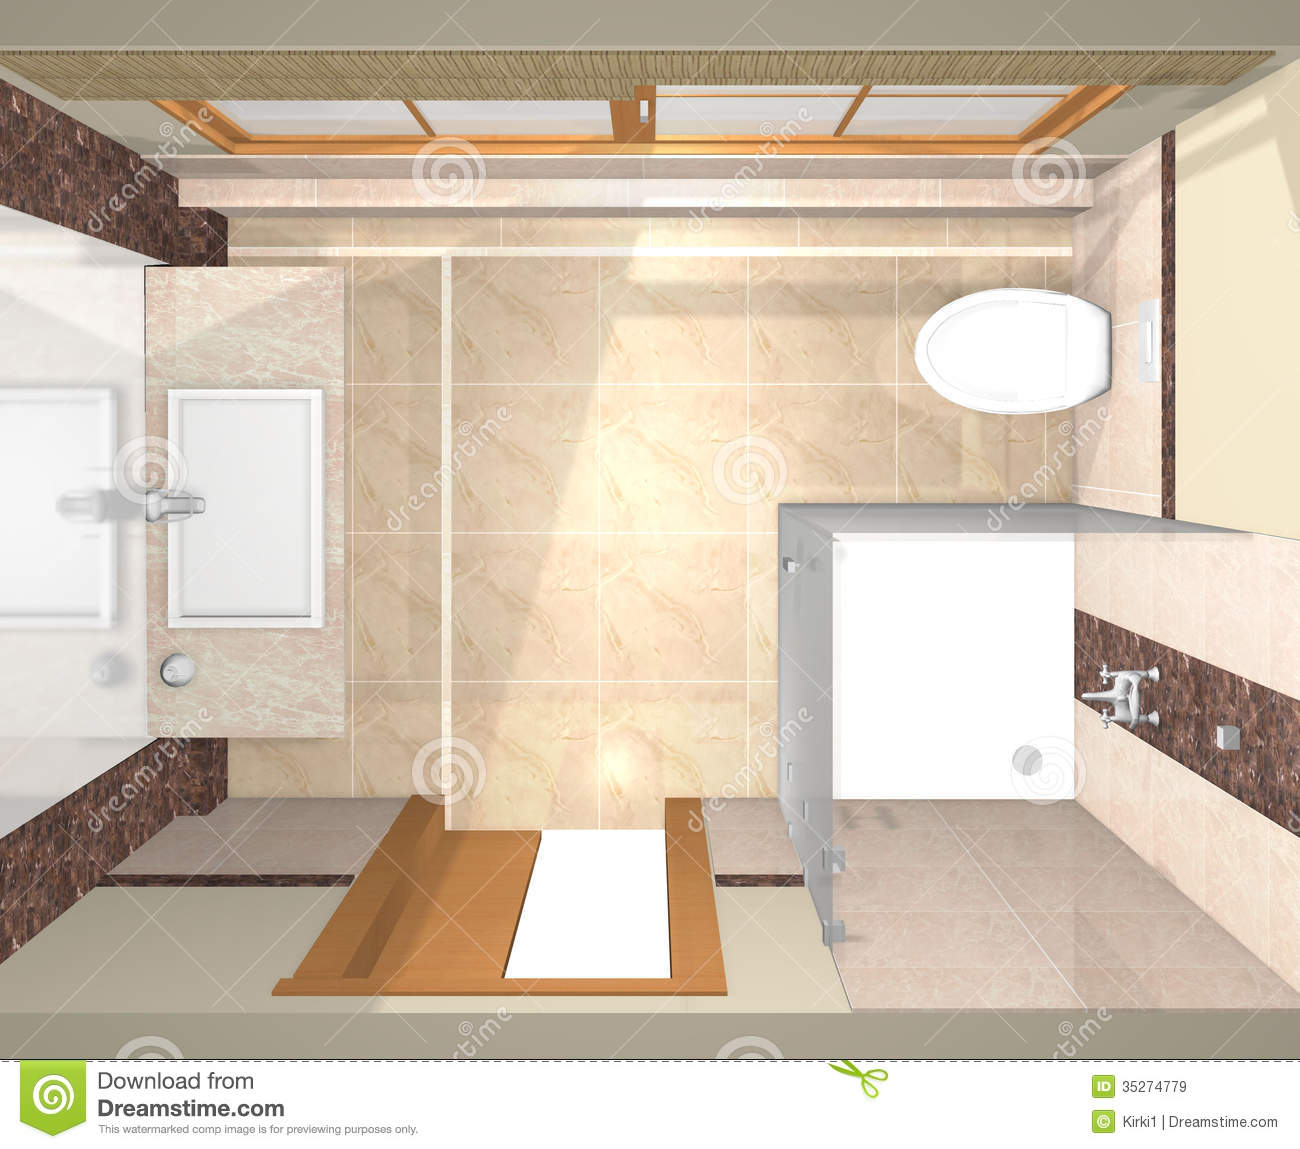 Several views of luxury bathroom royalty free stock images for Renovated bathrooms images